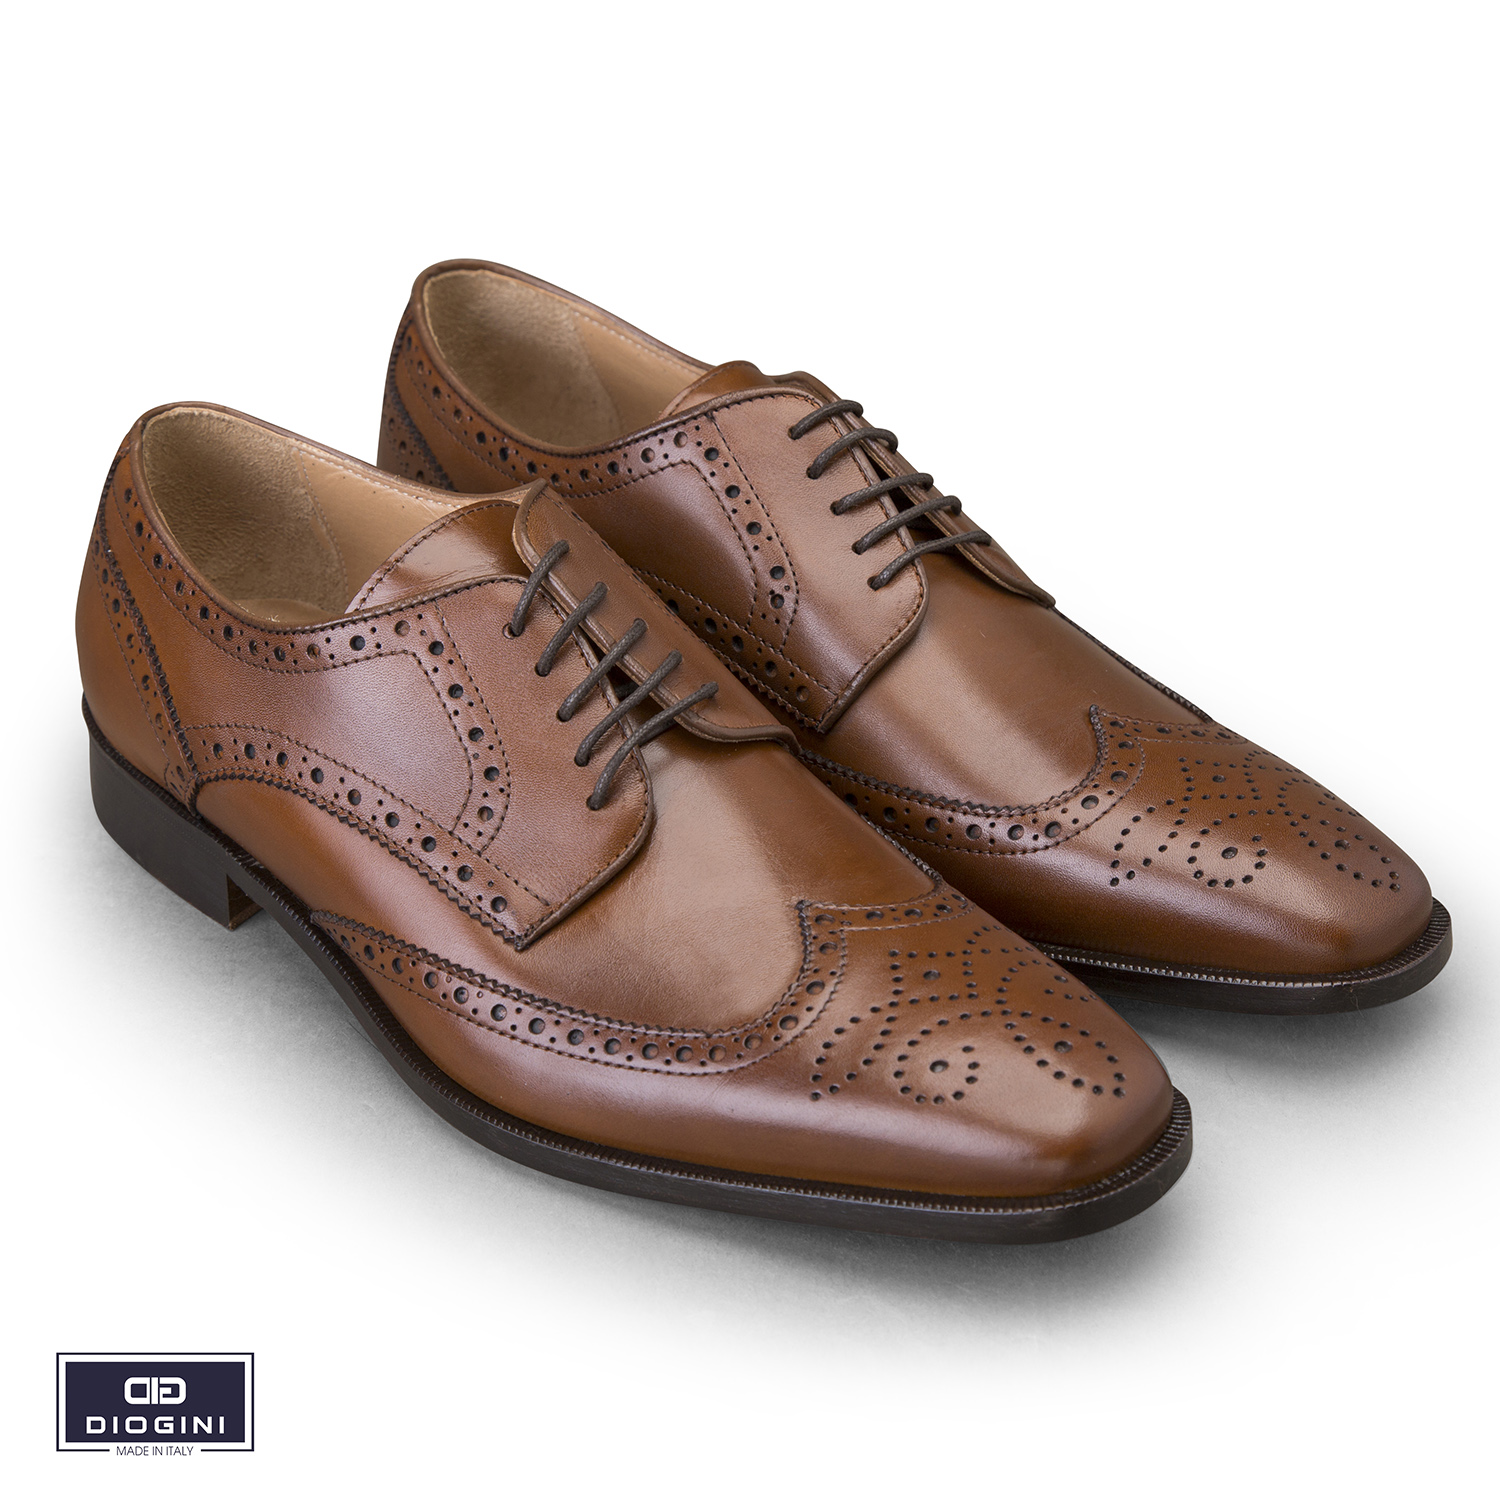 giày full brogues, half brogues, longwing brogues